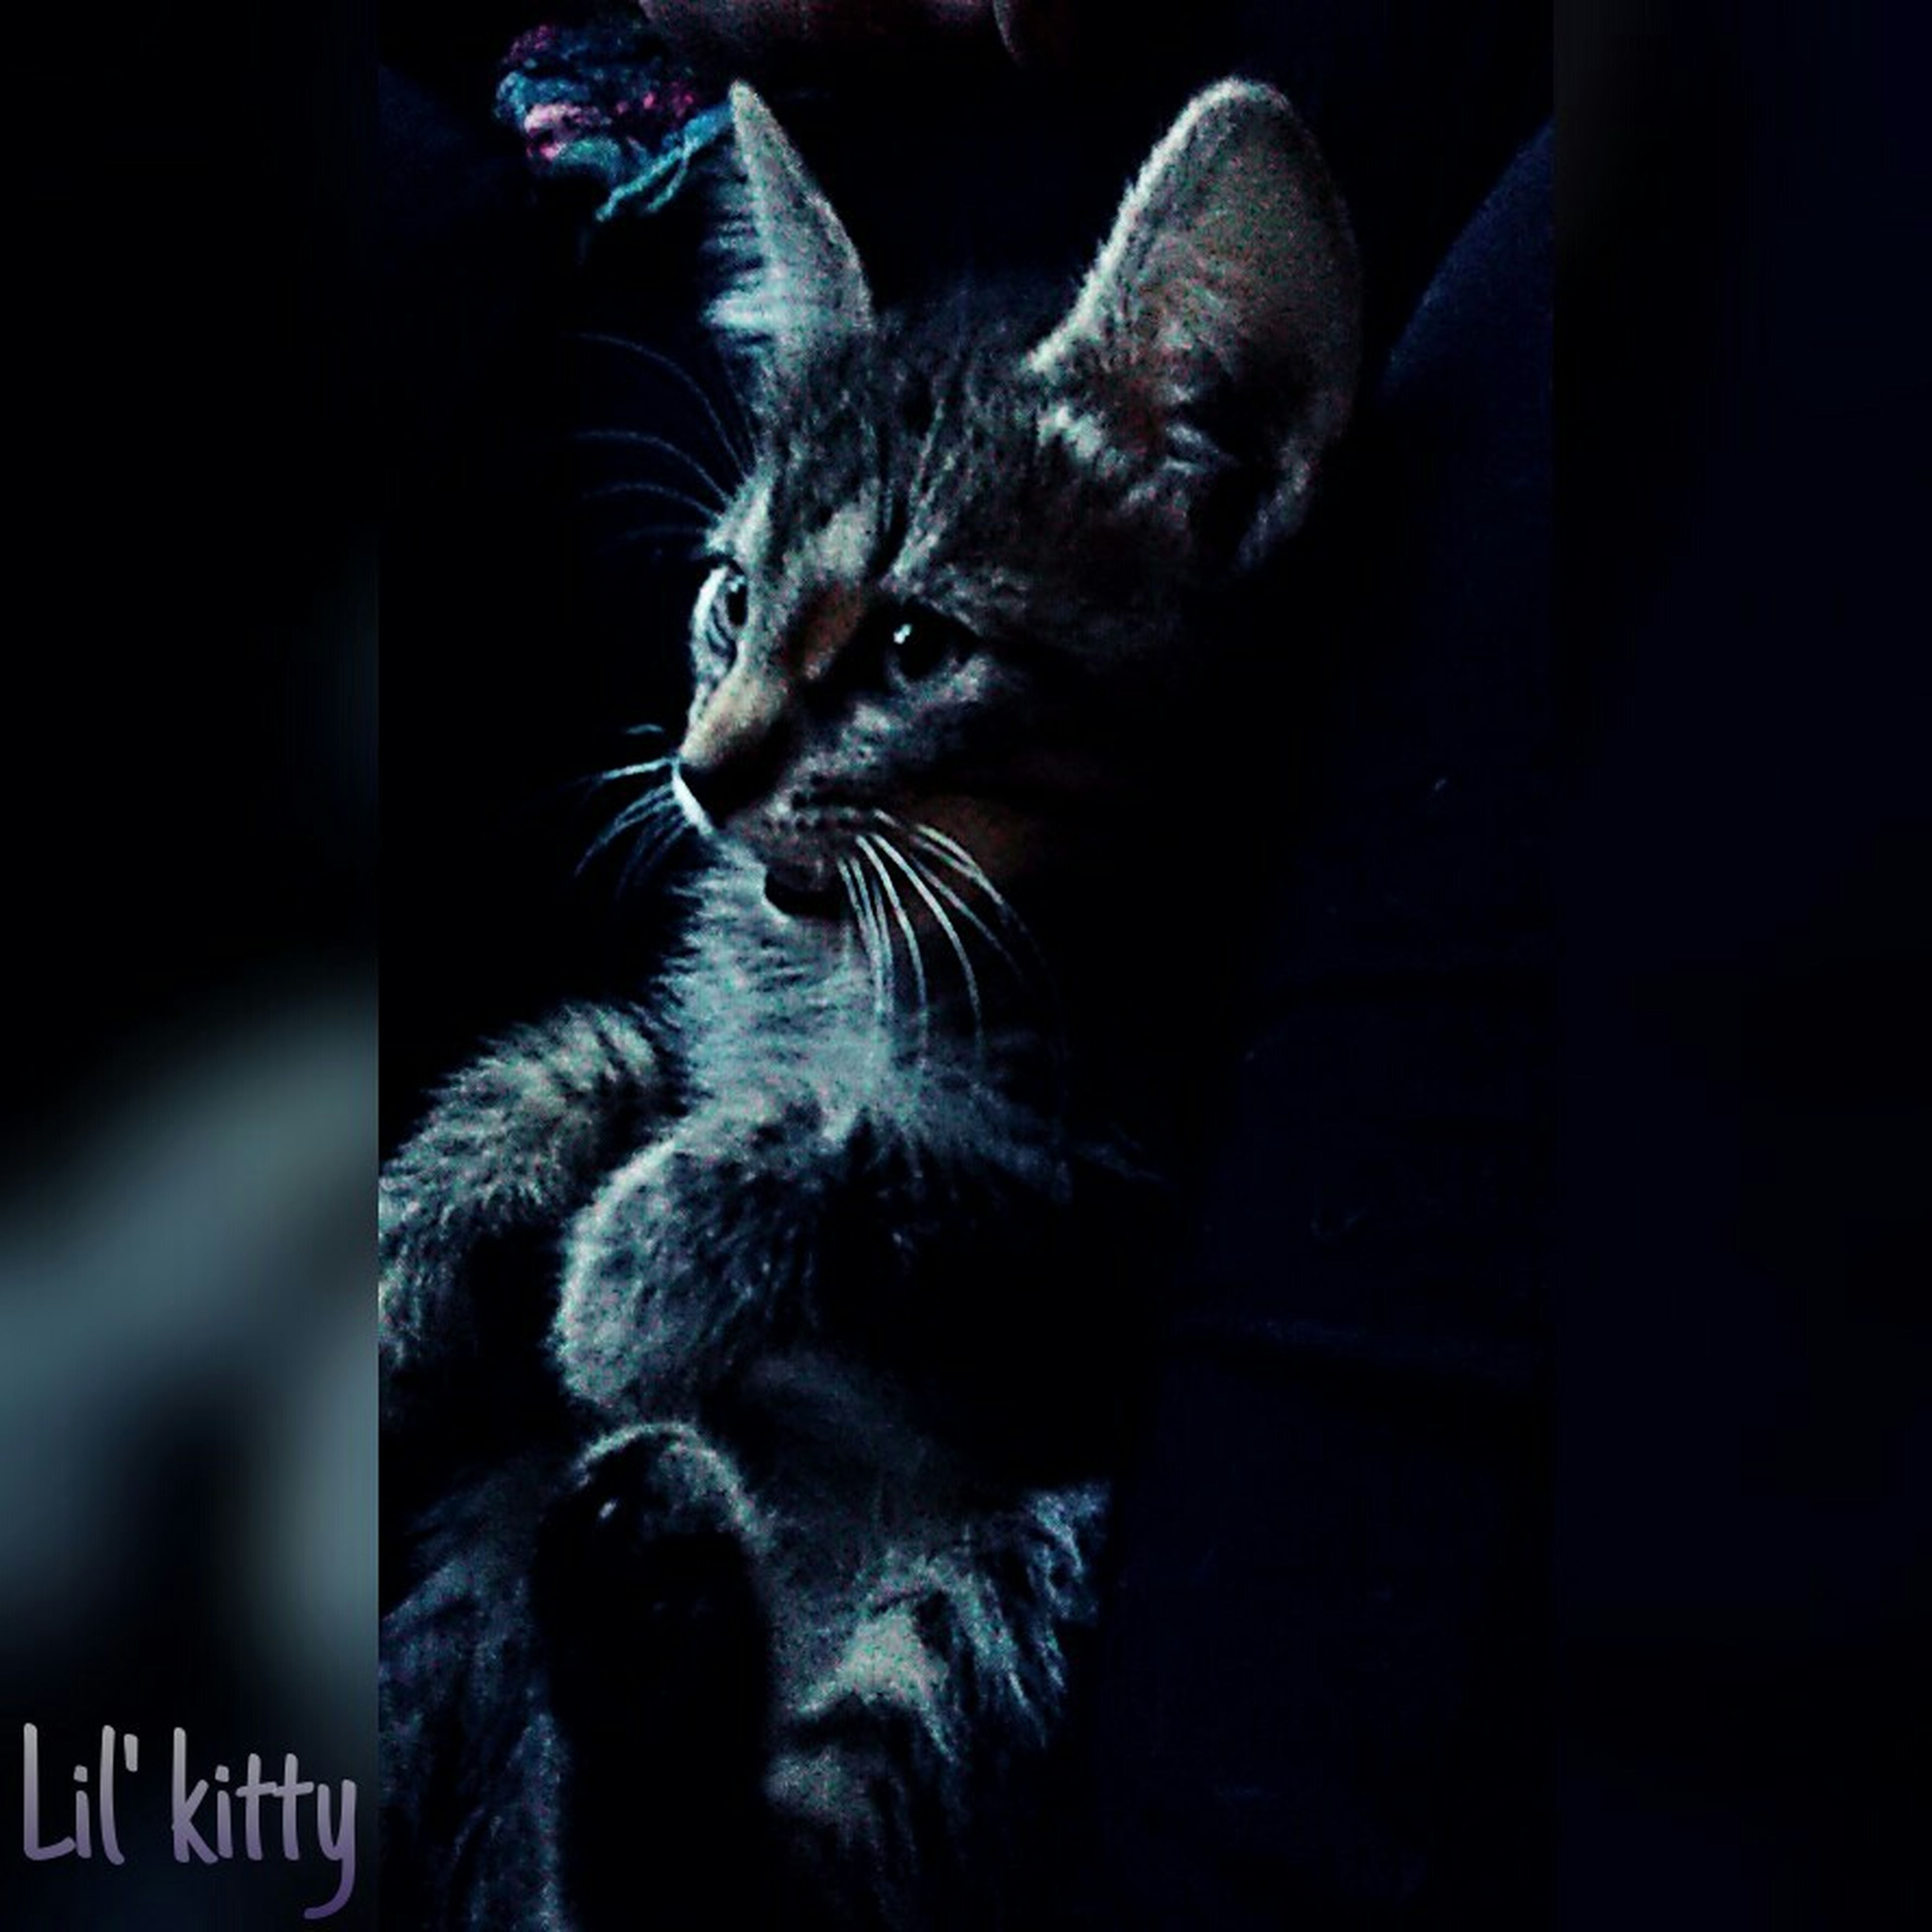 animal themes, one animal, pets, domestic cat, mammal, domestic animals, cat, feline, whisker, indoors, relaxation, close-up, black color, looking away, focus on foreground, portrait, zoology, alertness, sitting, no people